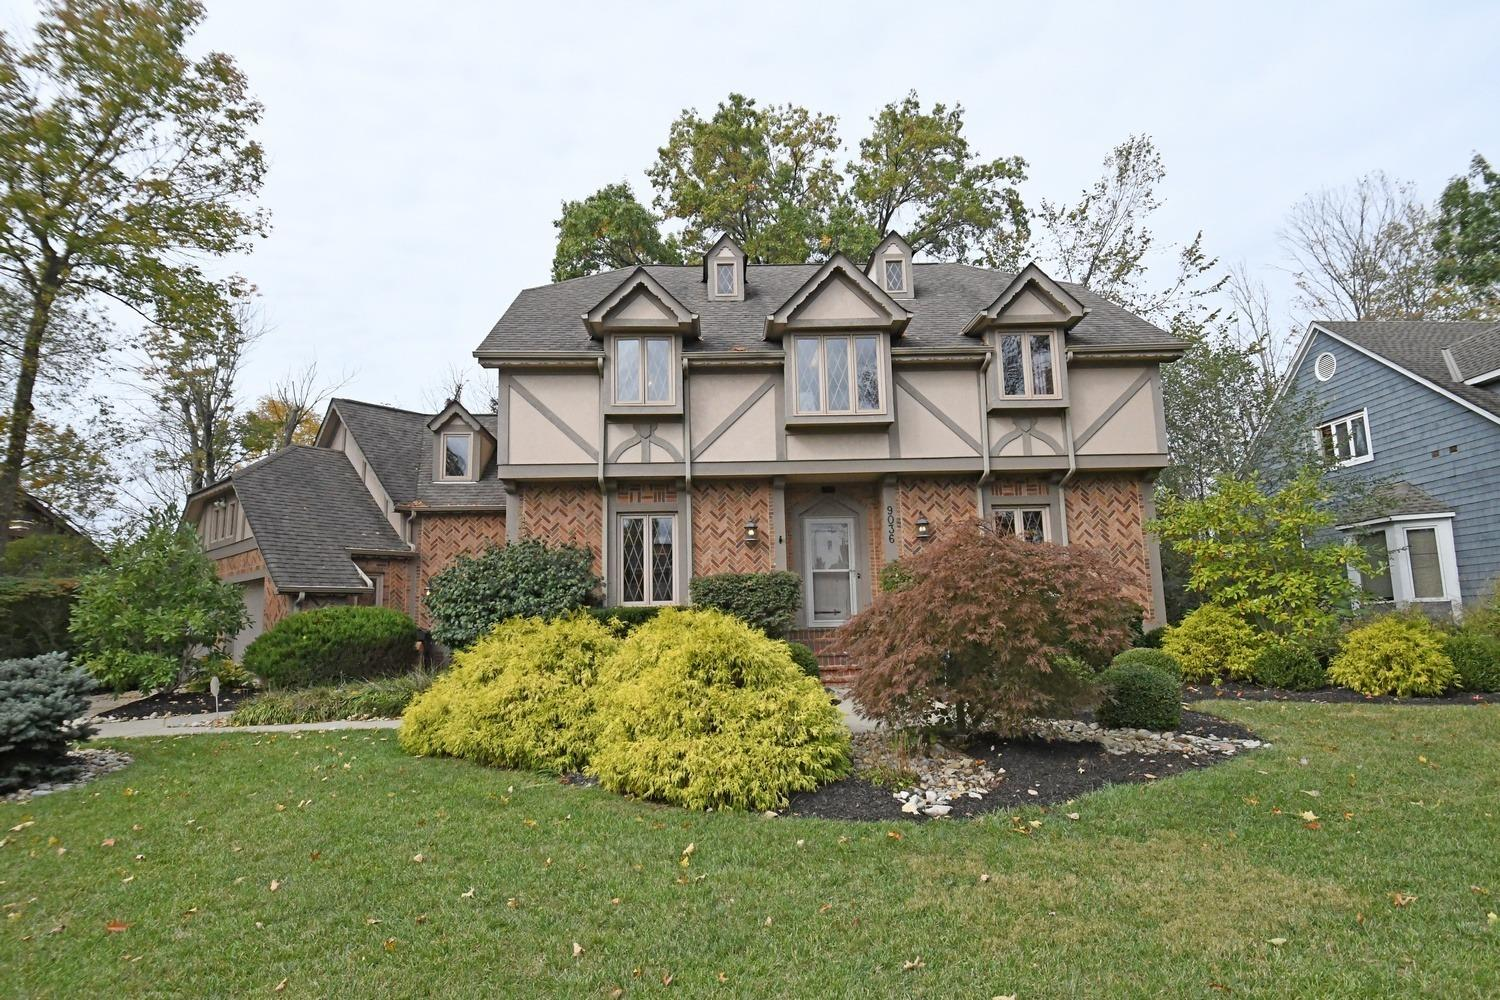 Former model, this stunning Tudor is located on a quiet cul-de-sac